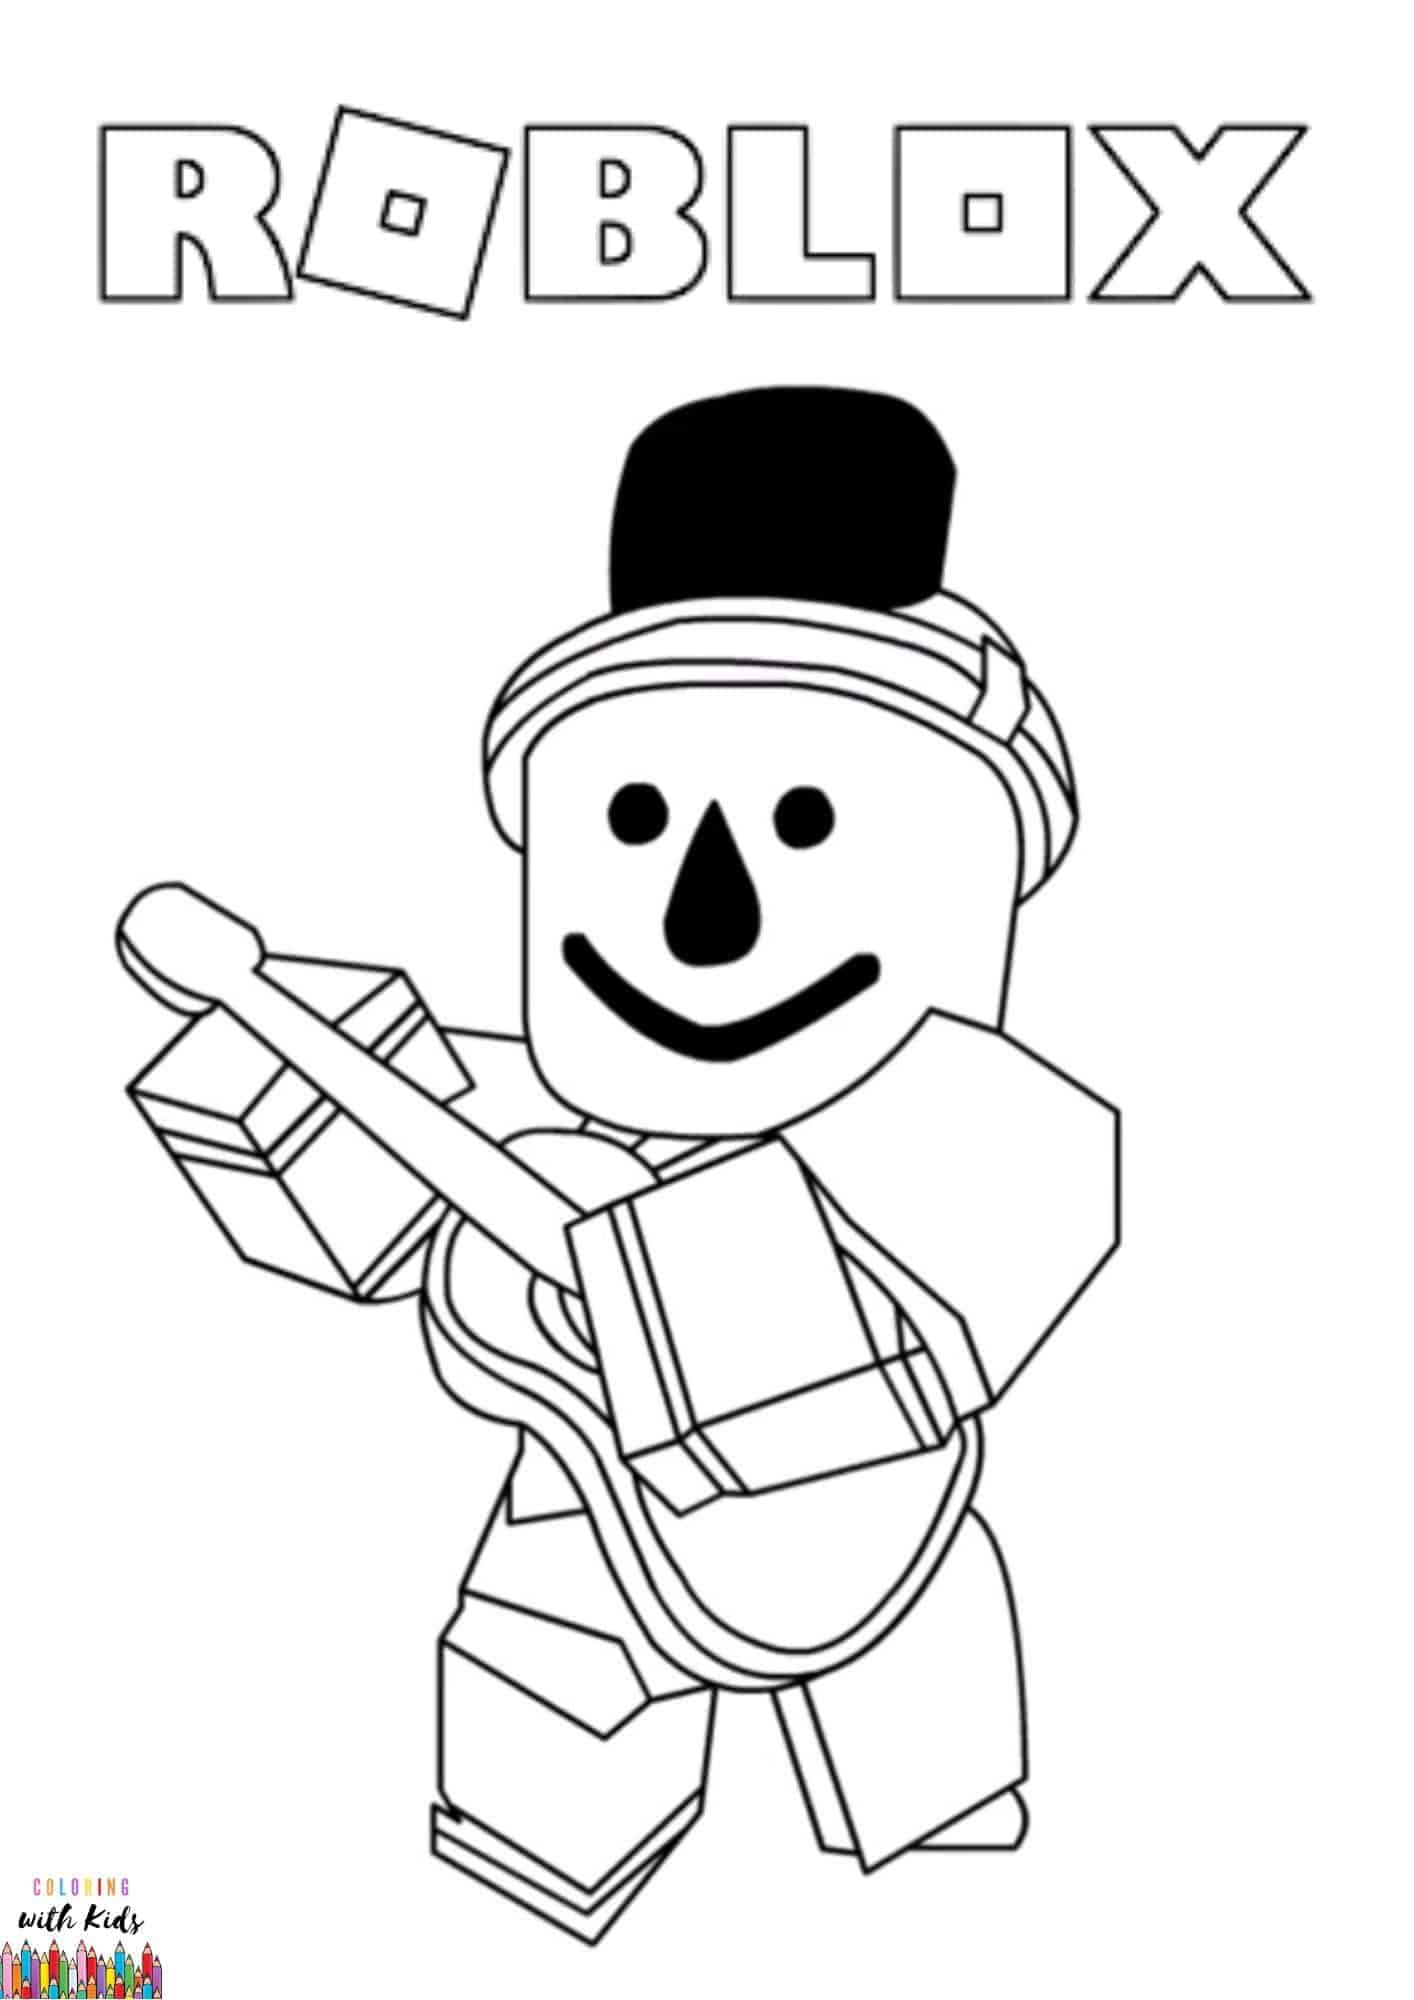 Roblox Cartoon Coloring Page   coloringwithkids.com